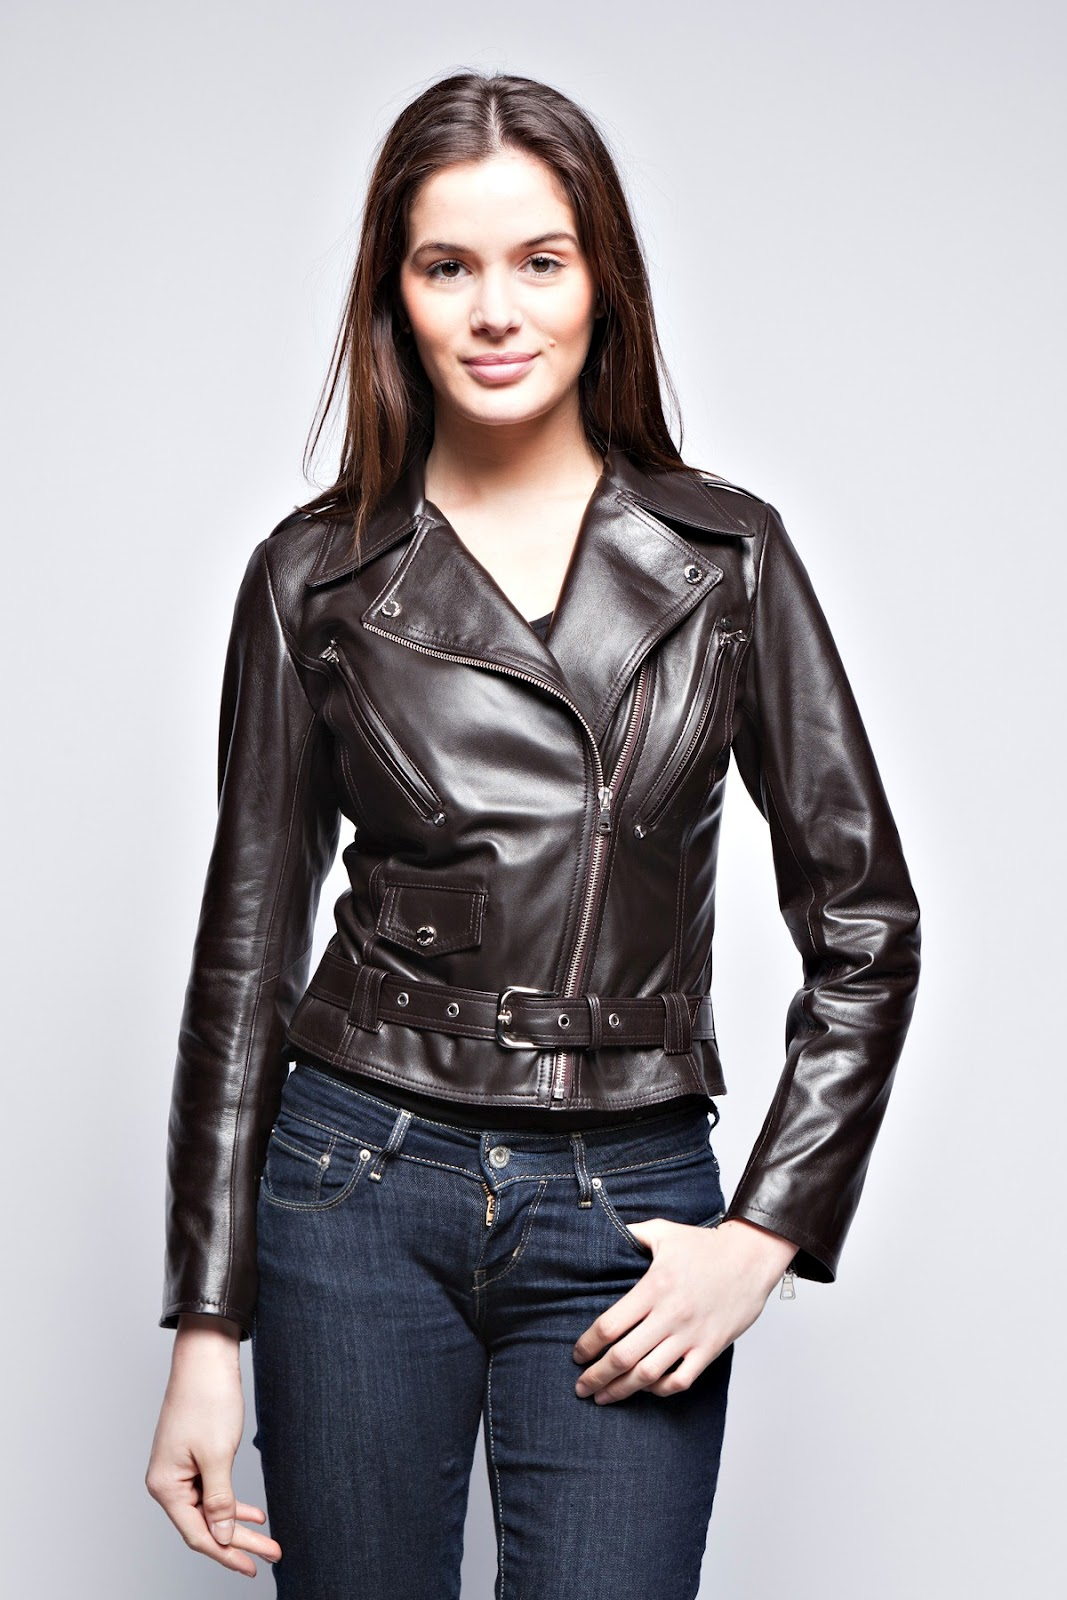 Black Leather Jacket For Women | Wallpaper HD